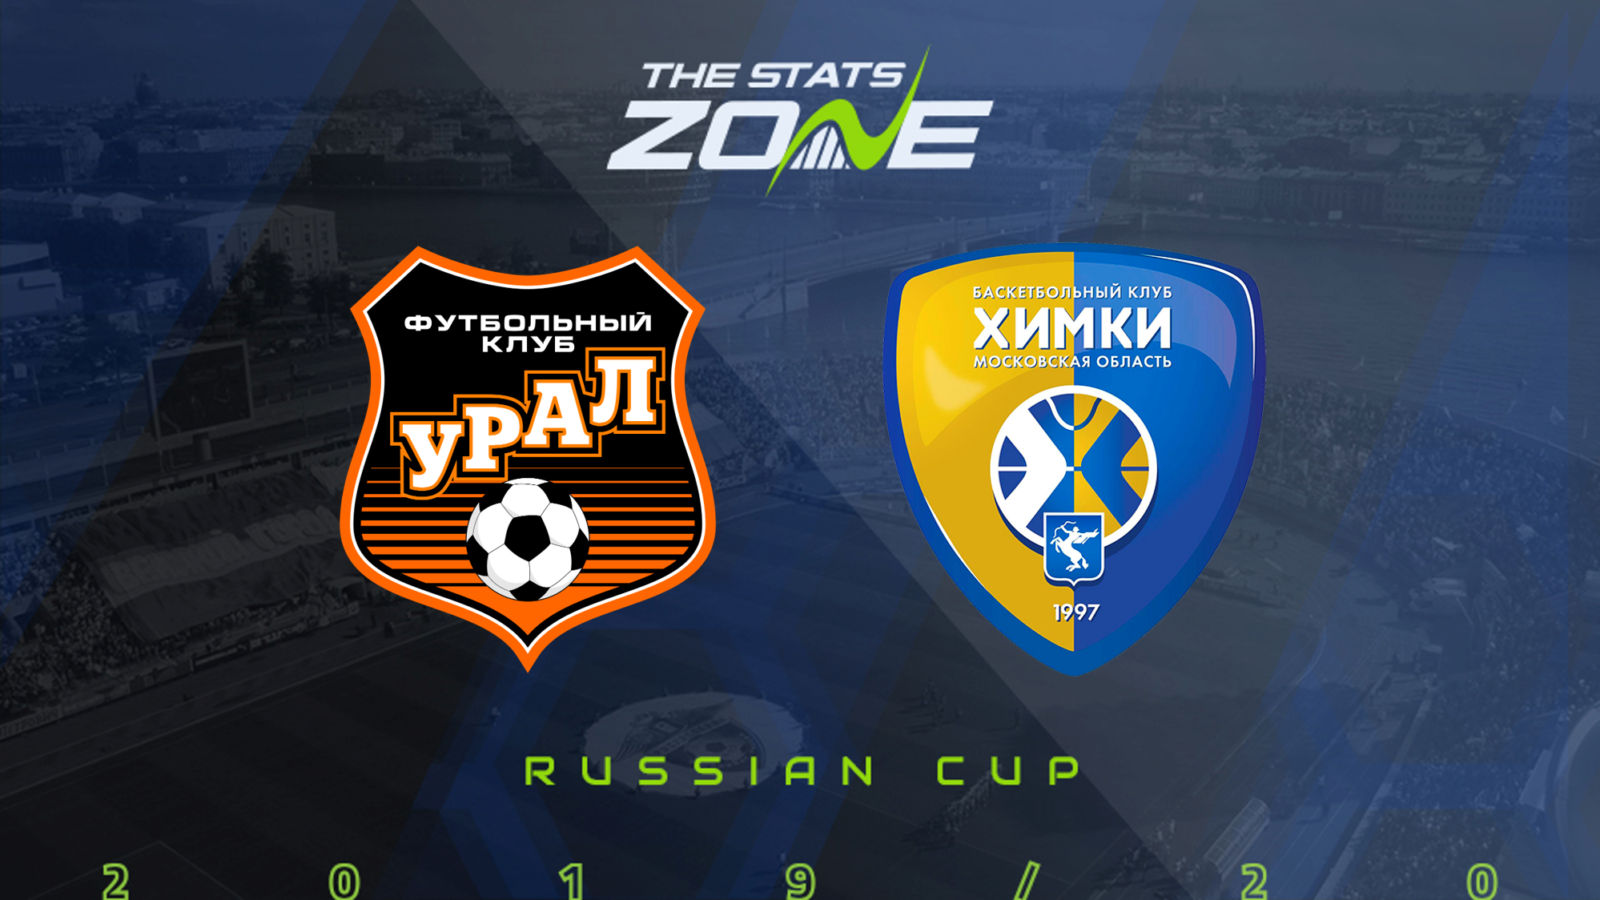 2019 20 Russian Cup Ural Vs Khimki Preview Prediction The Stats Zone